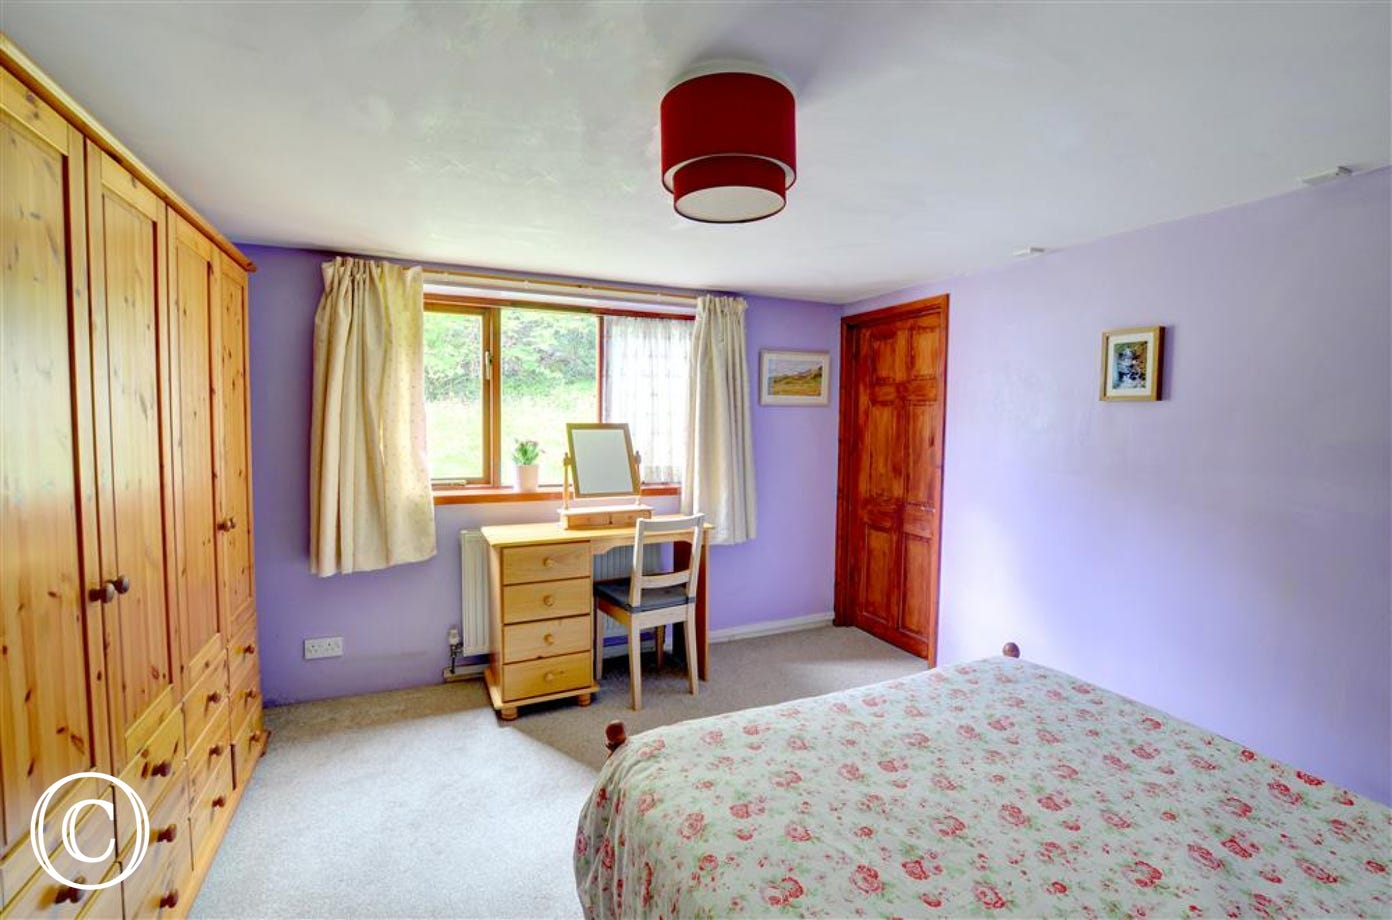 The good sized double bedroom has pine bedroom furniture with plenty of wardrobe space